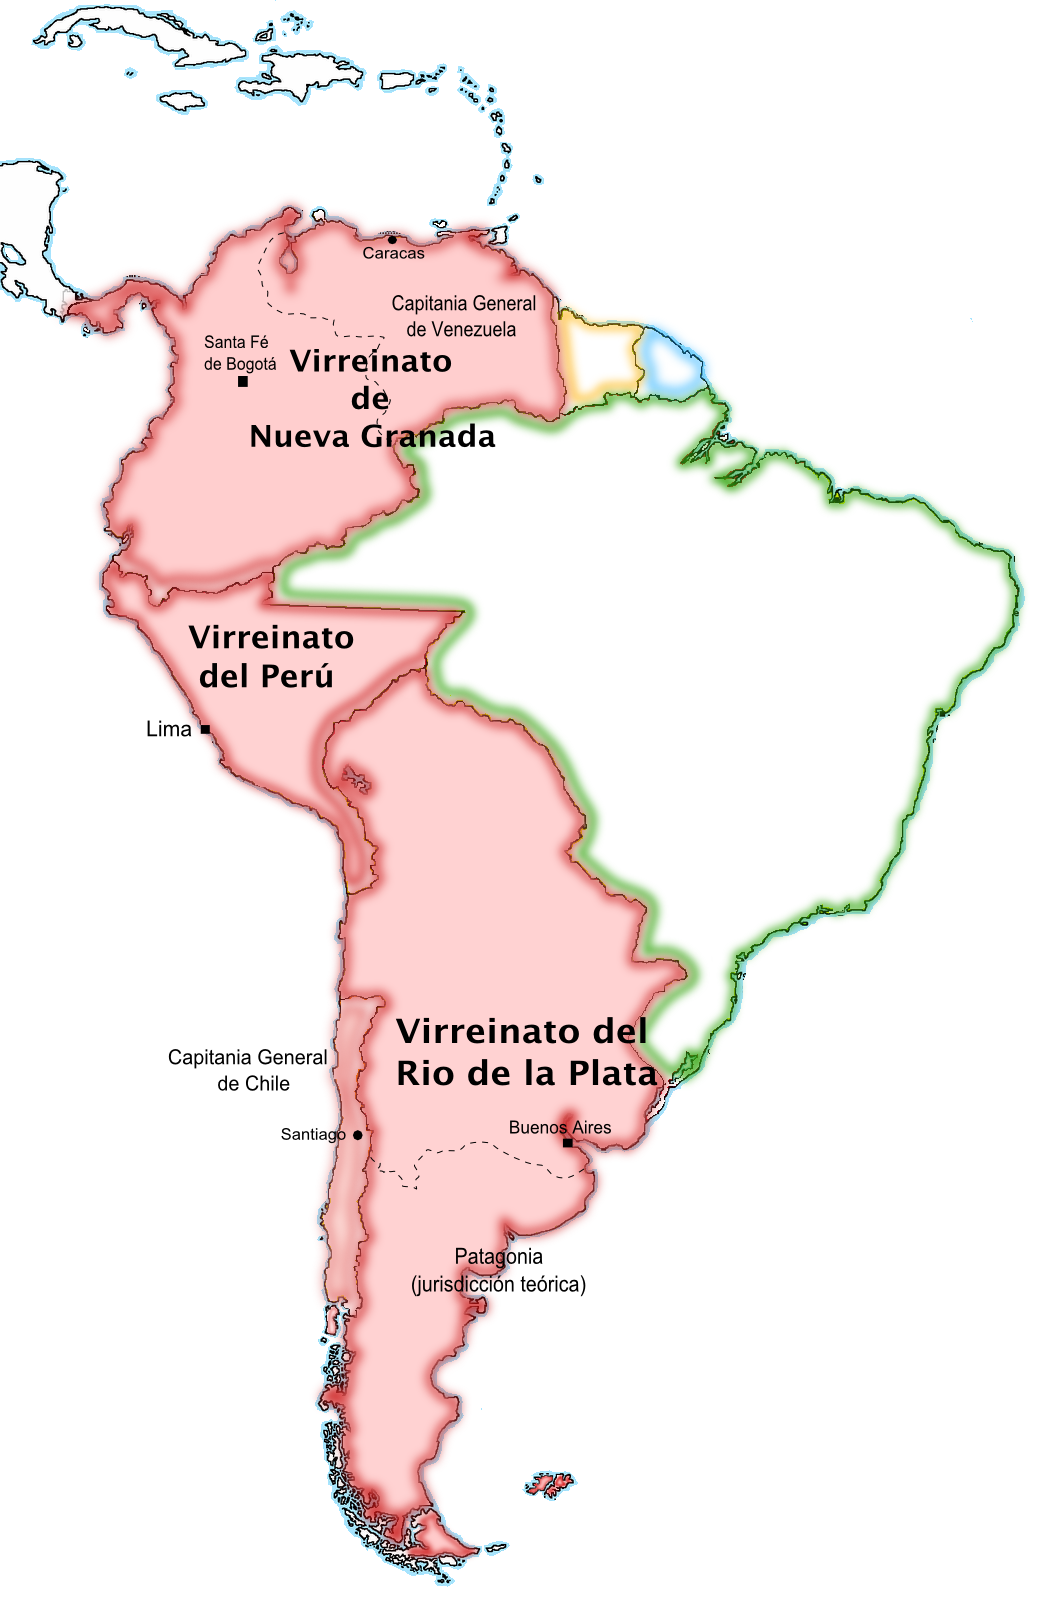 spanish colonialism Spanish colonization of the americas 3 first mainland explorations in 1513, vasco núñez de balboa crossed the isthmus of panama, to find gold but instead led the.